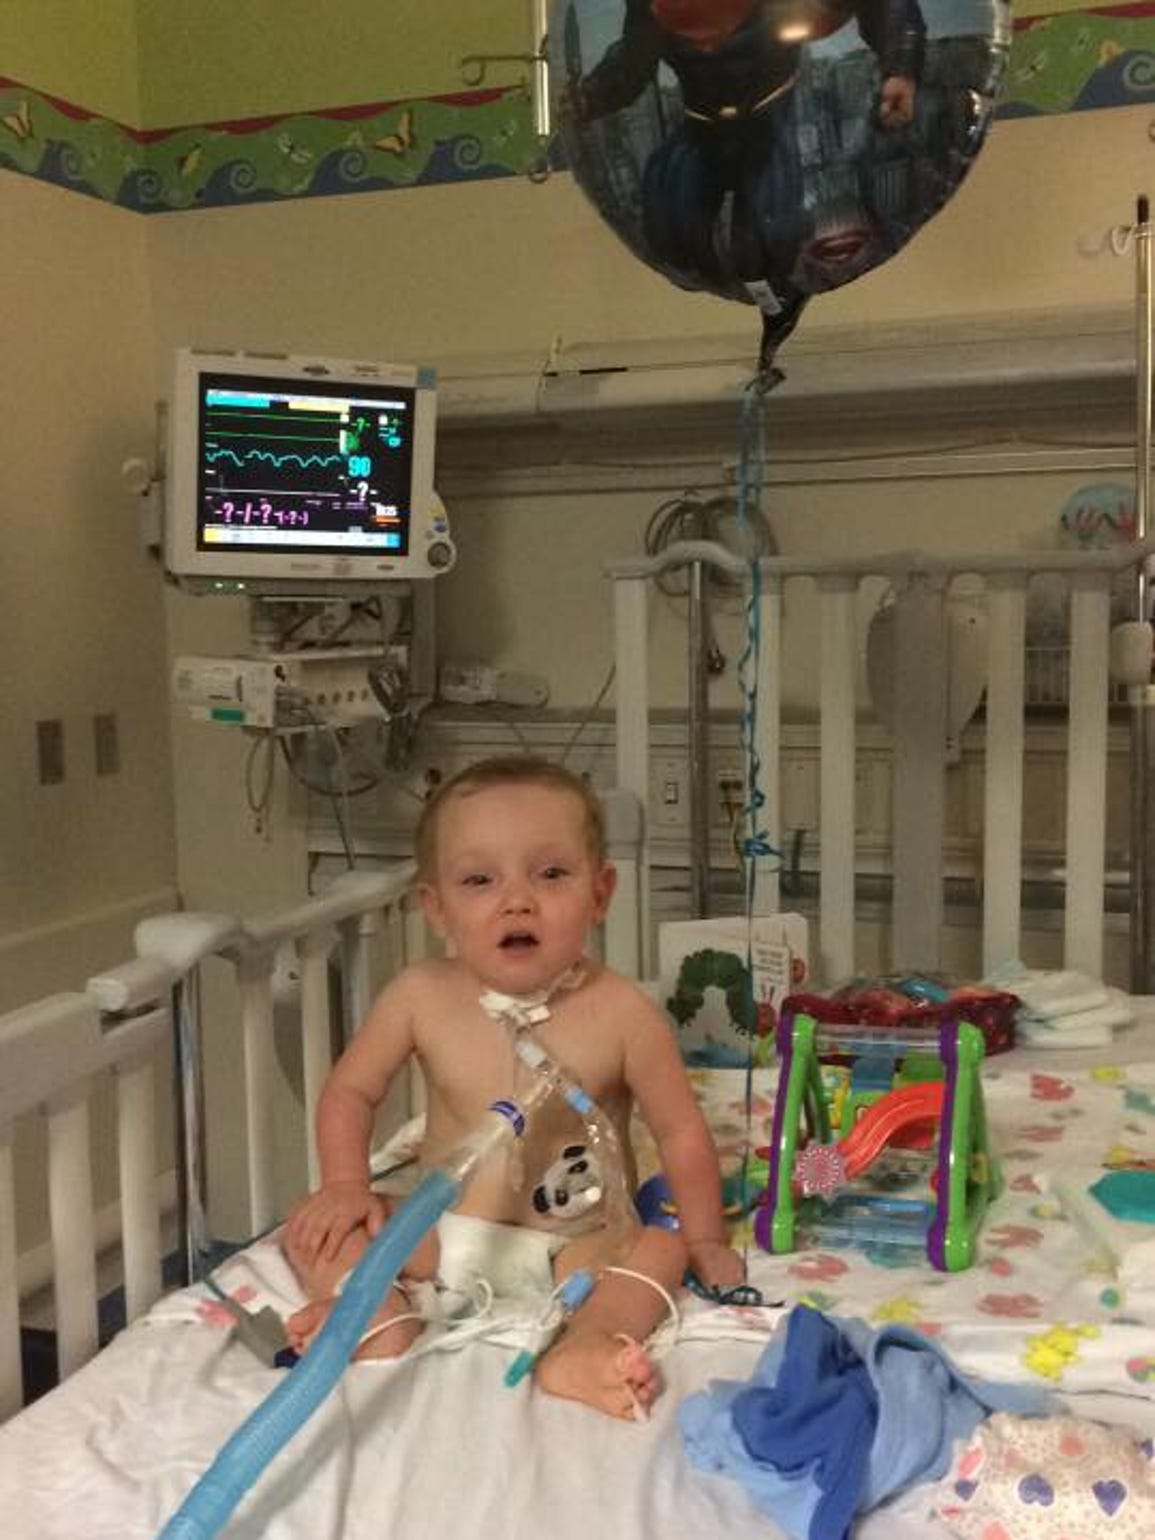 Baby Braxtel was hospitalized last month for a procedure